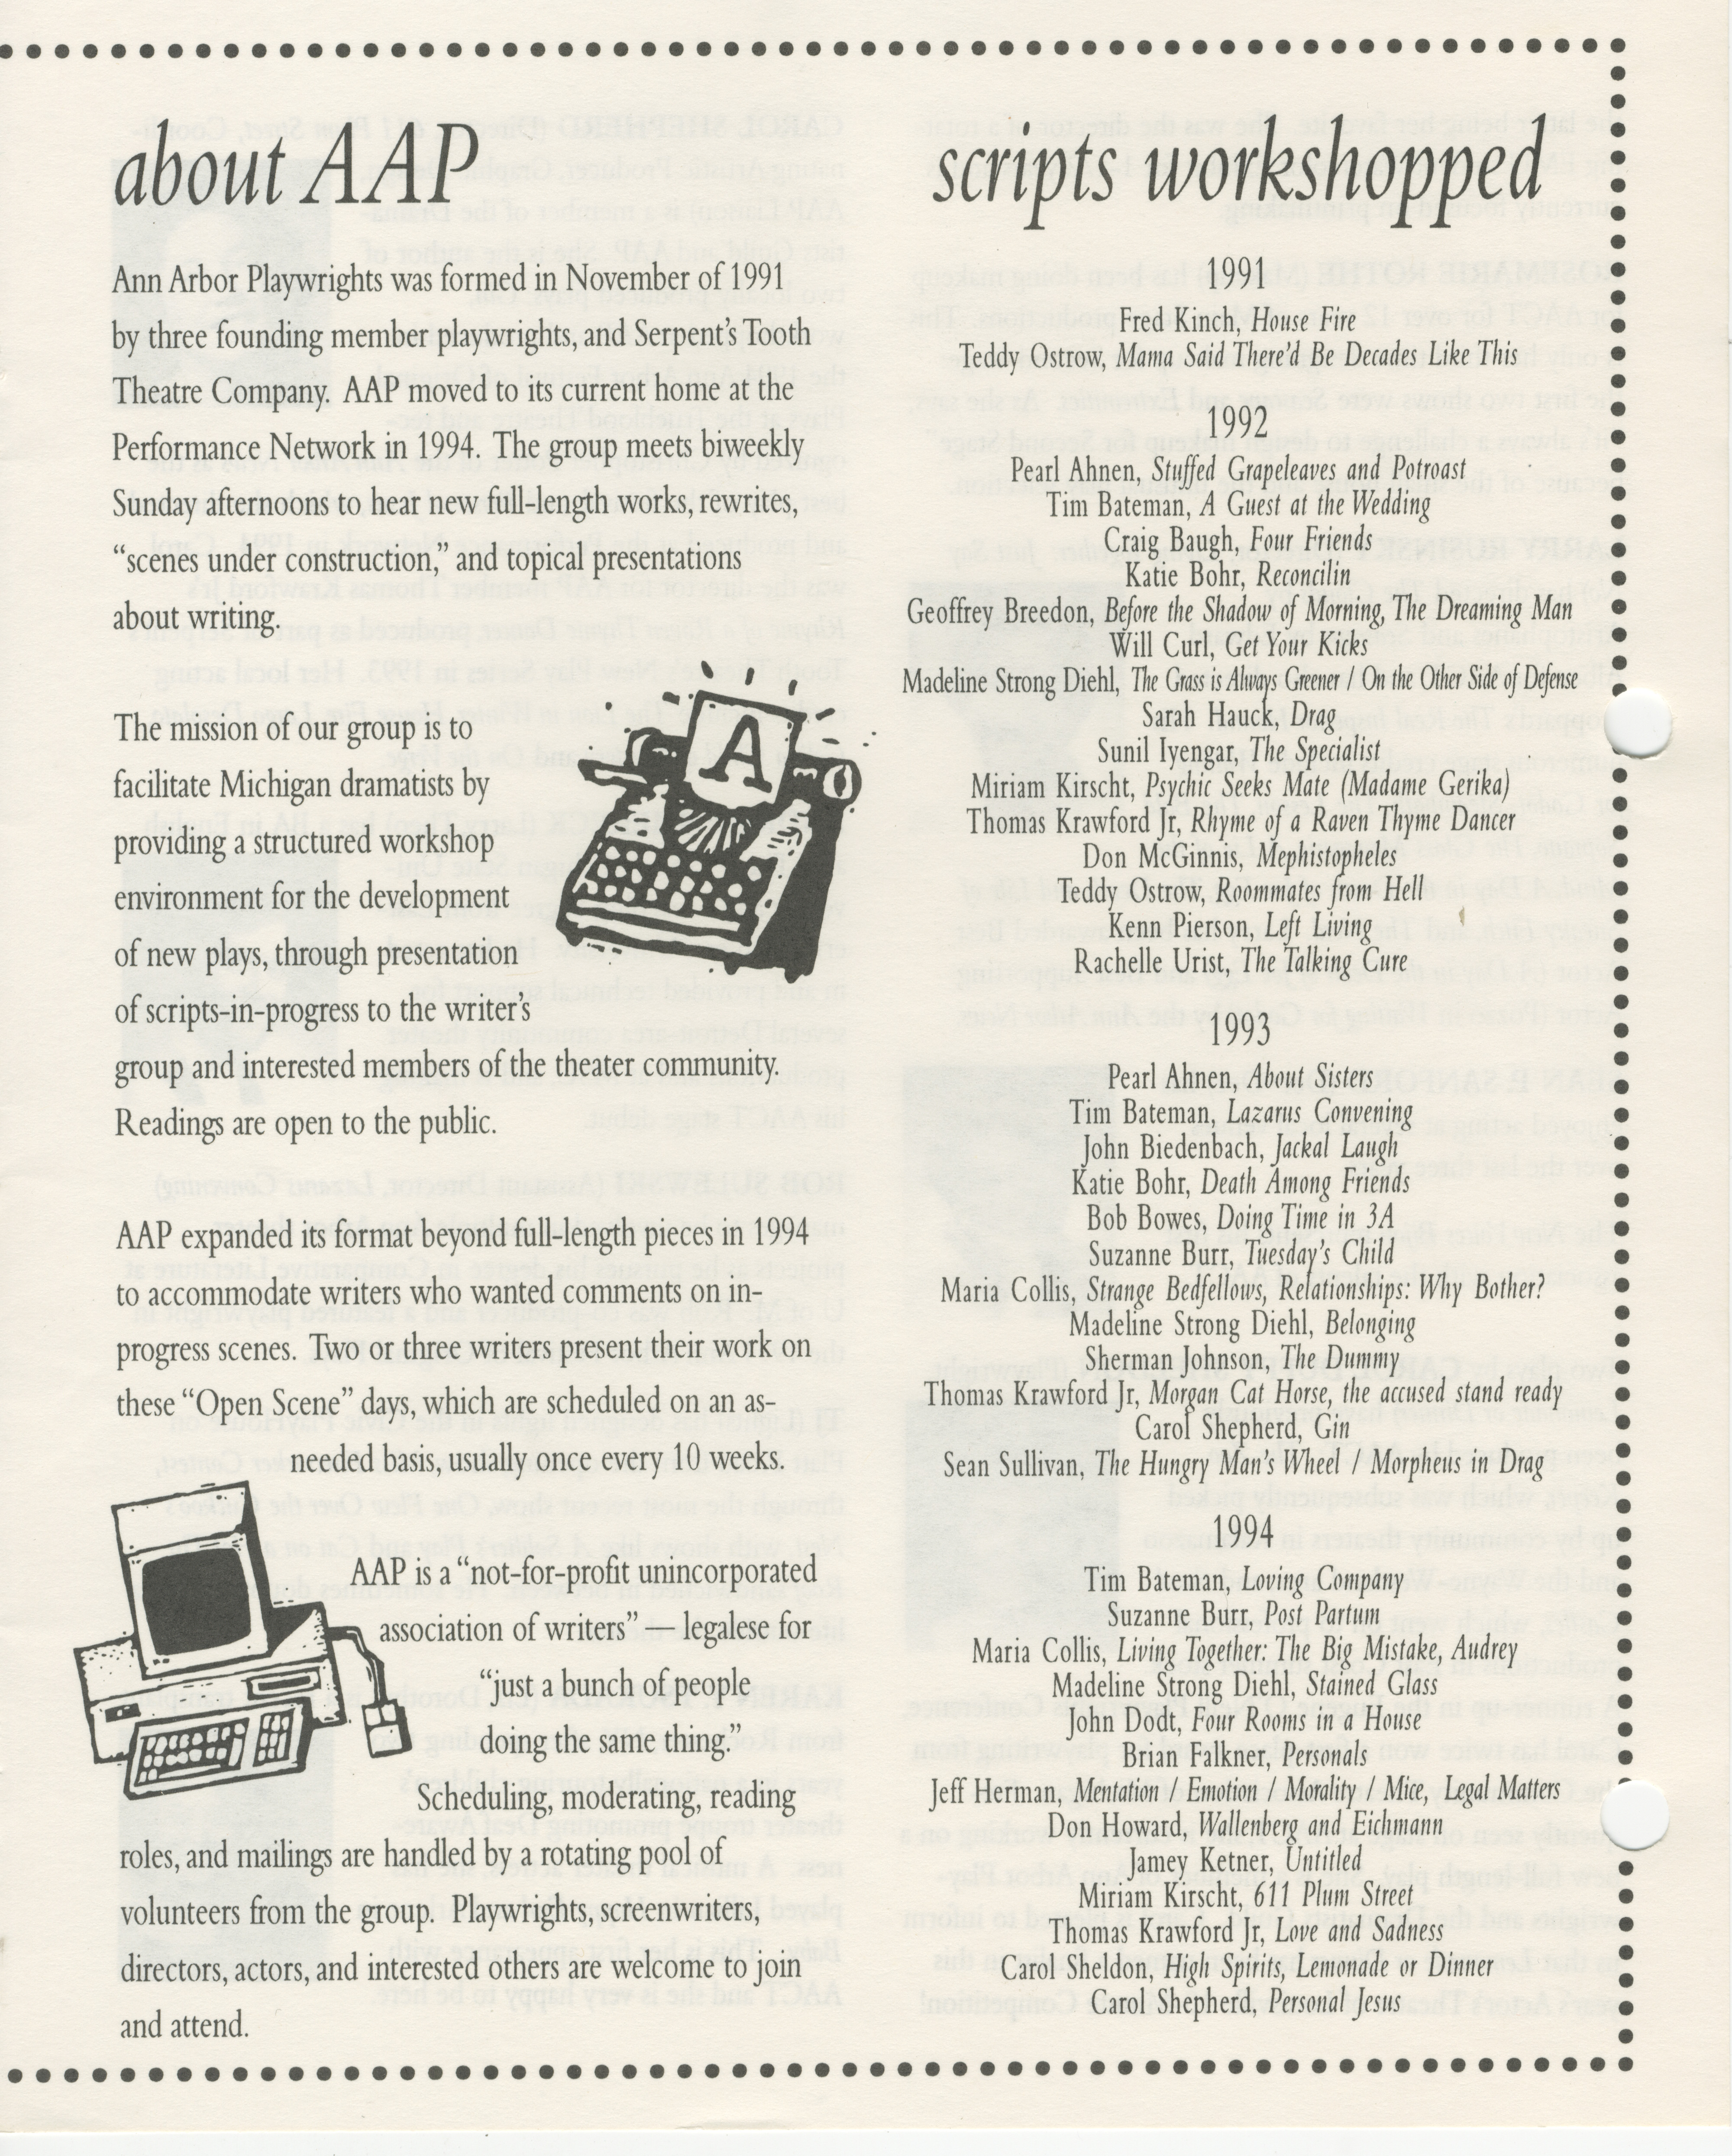 Ann Arbor Civic Theatre Program: New Voices , May 11, 1995 image